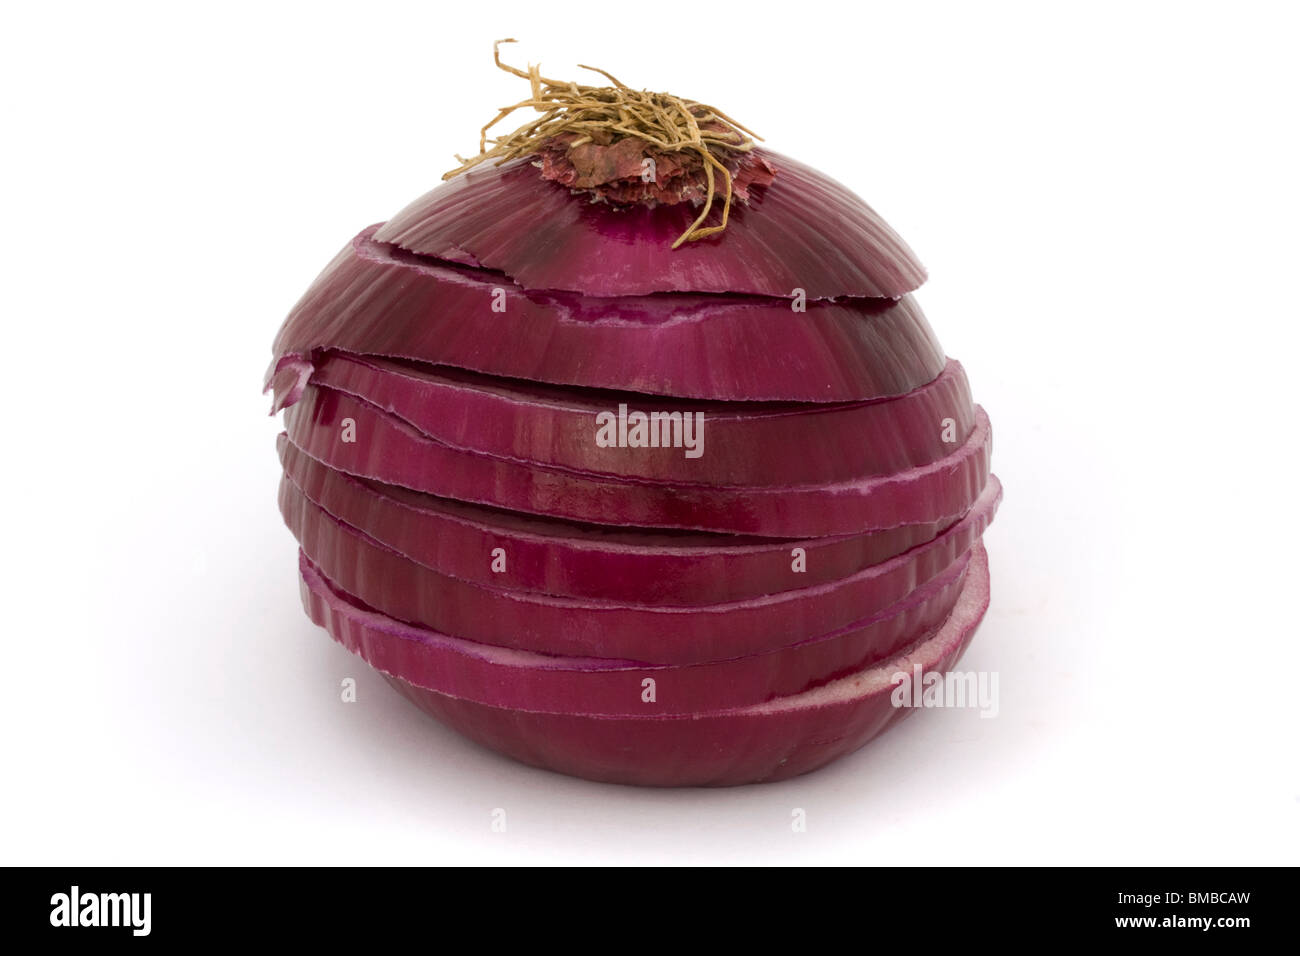 sliced red onion on a white background - Stock Image